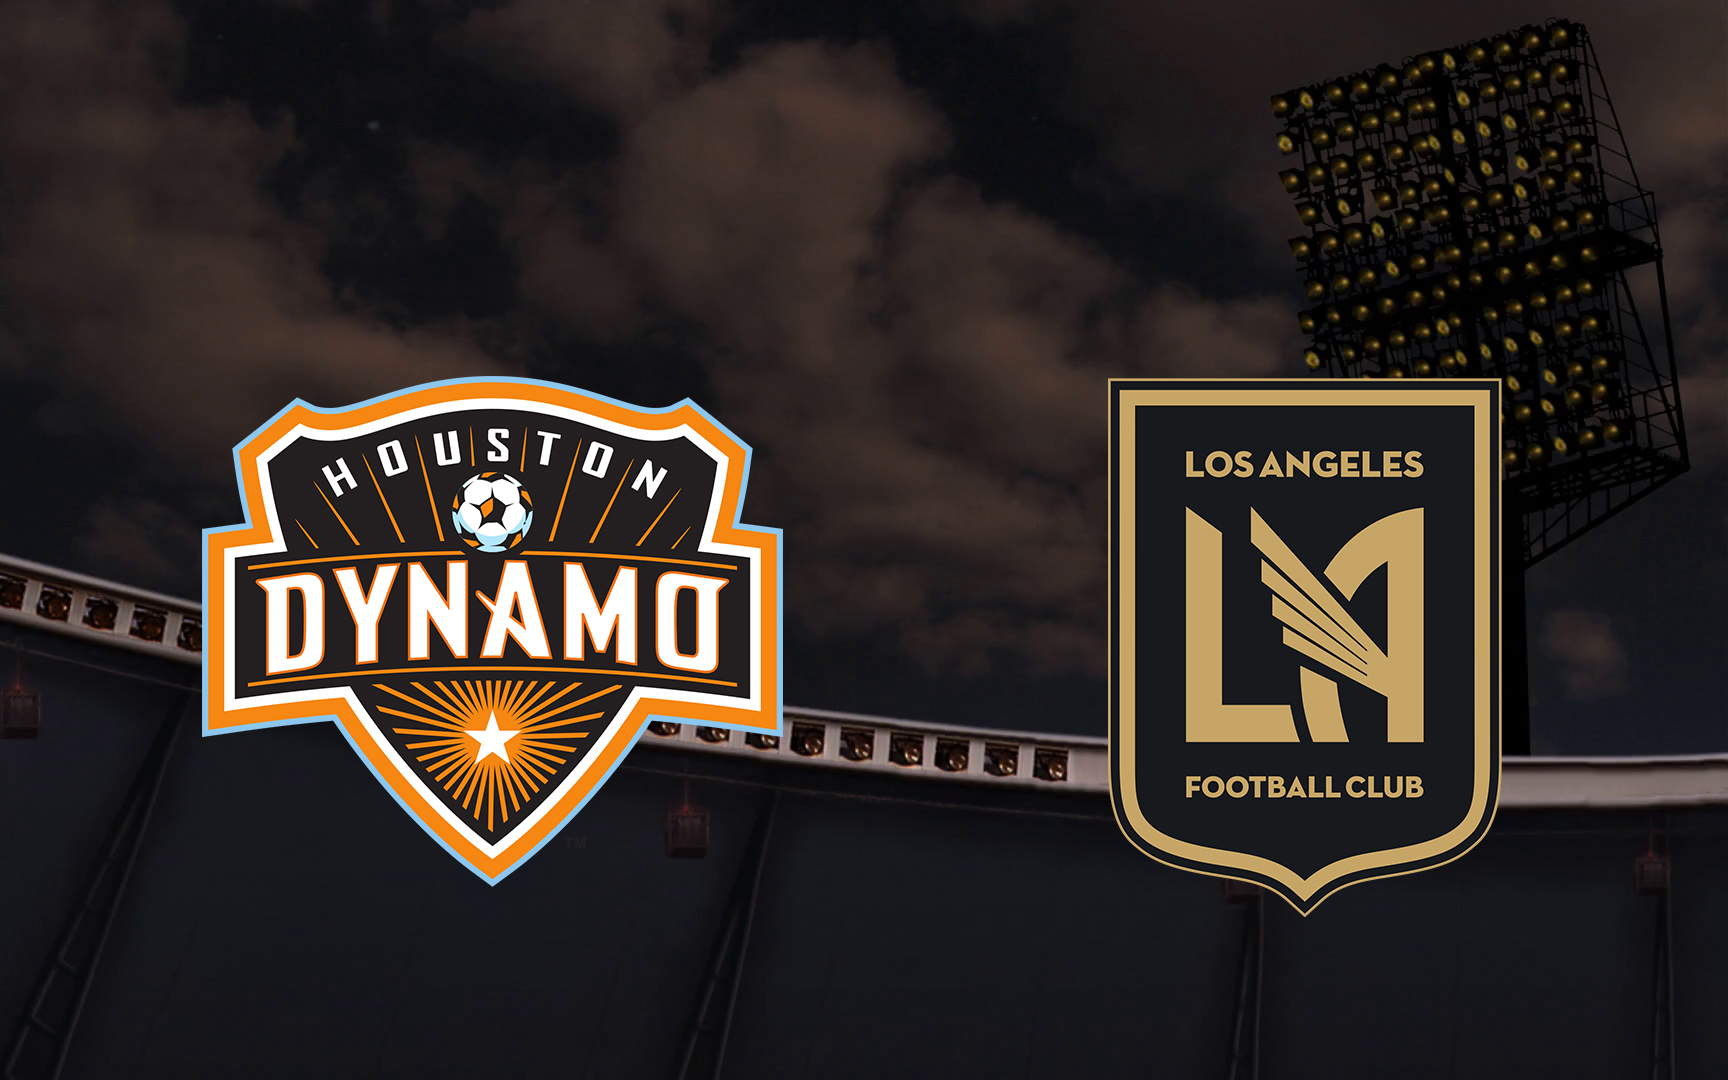 houston-dynamo-vs-los-angeles-fc-tip-bong-da-9-8-2018 1